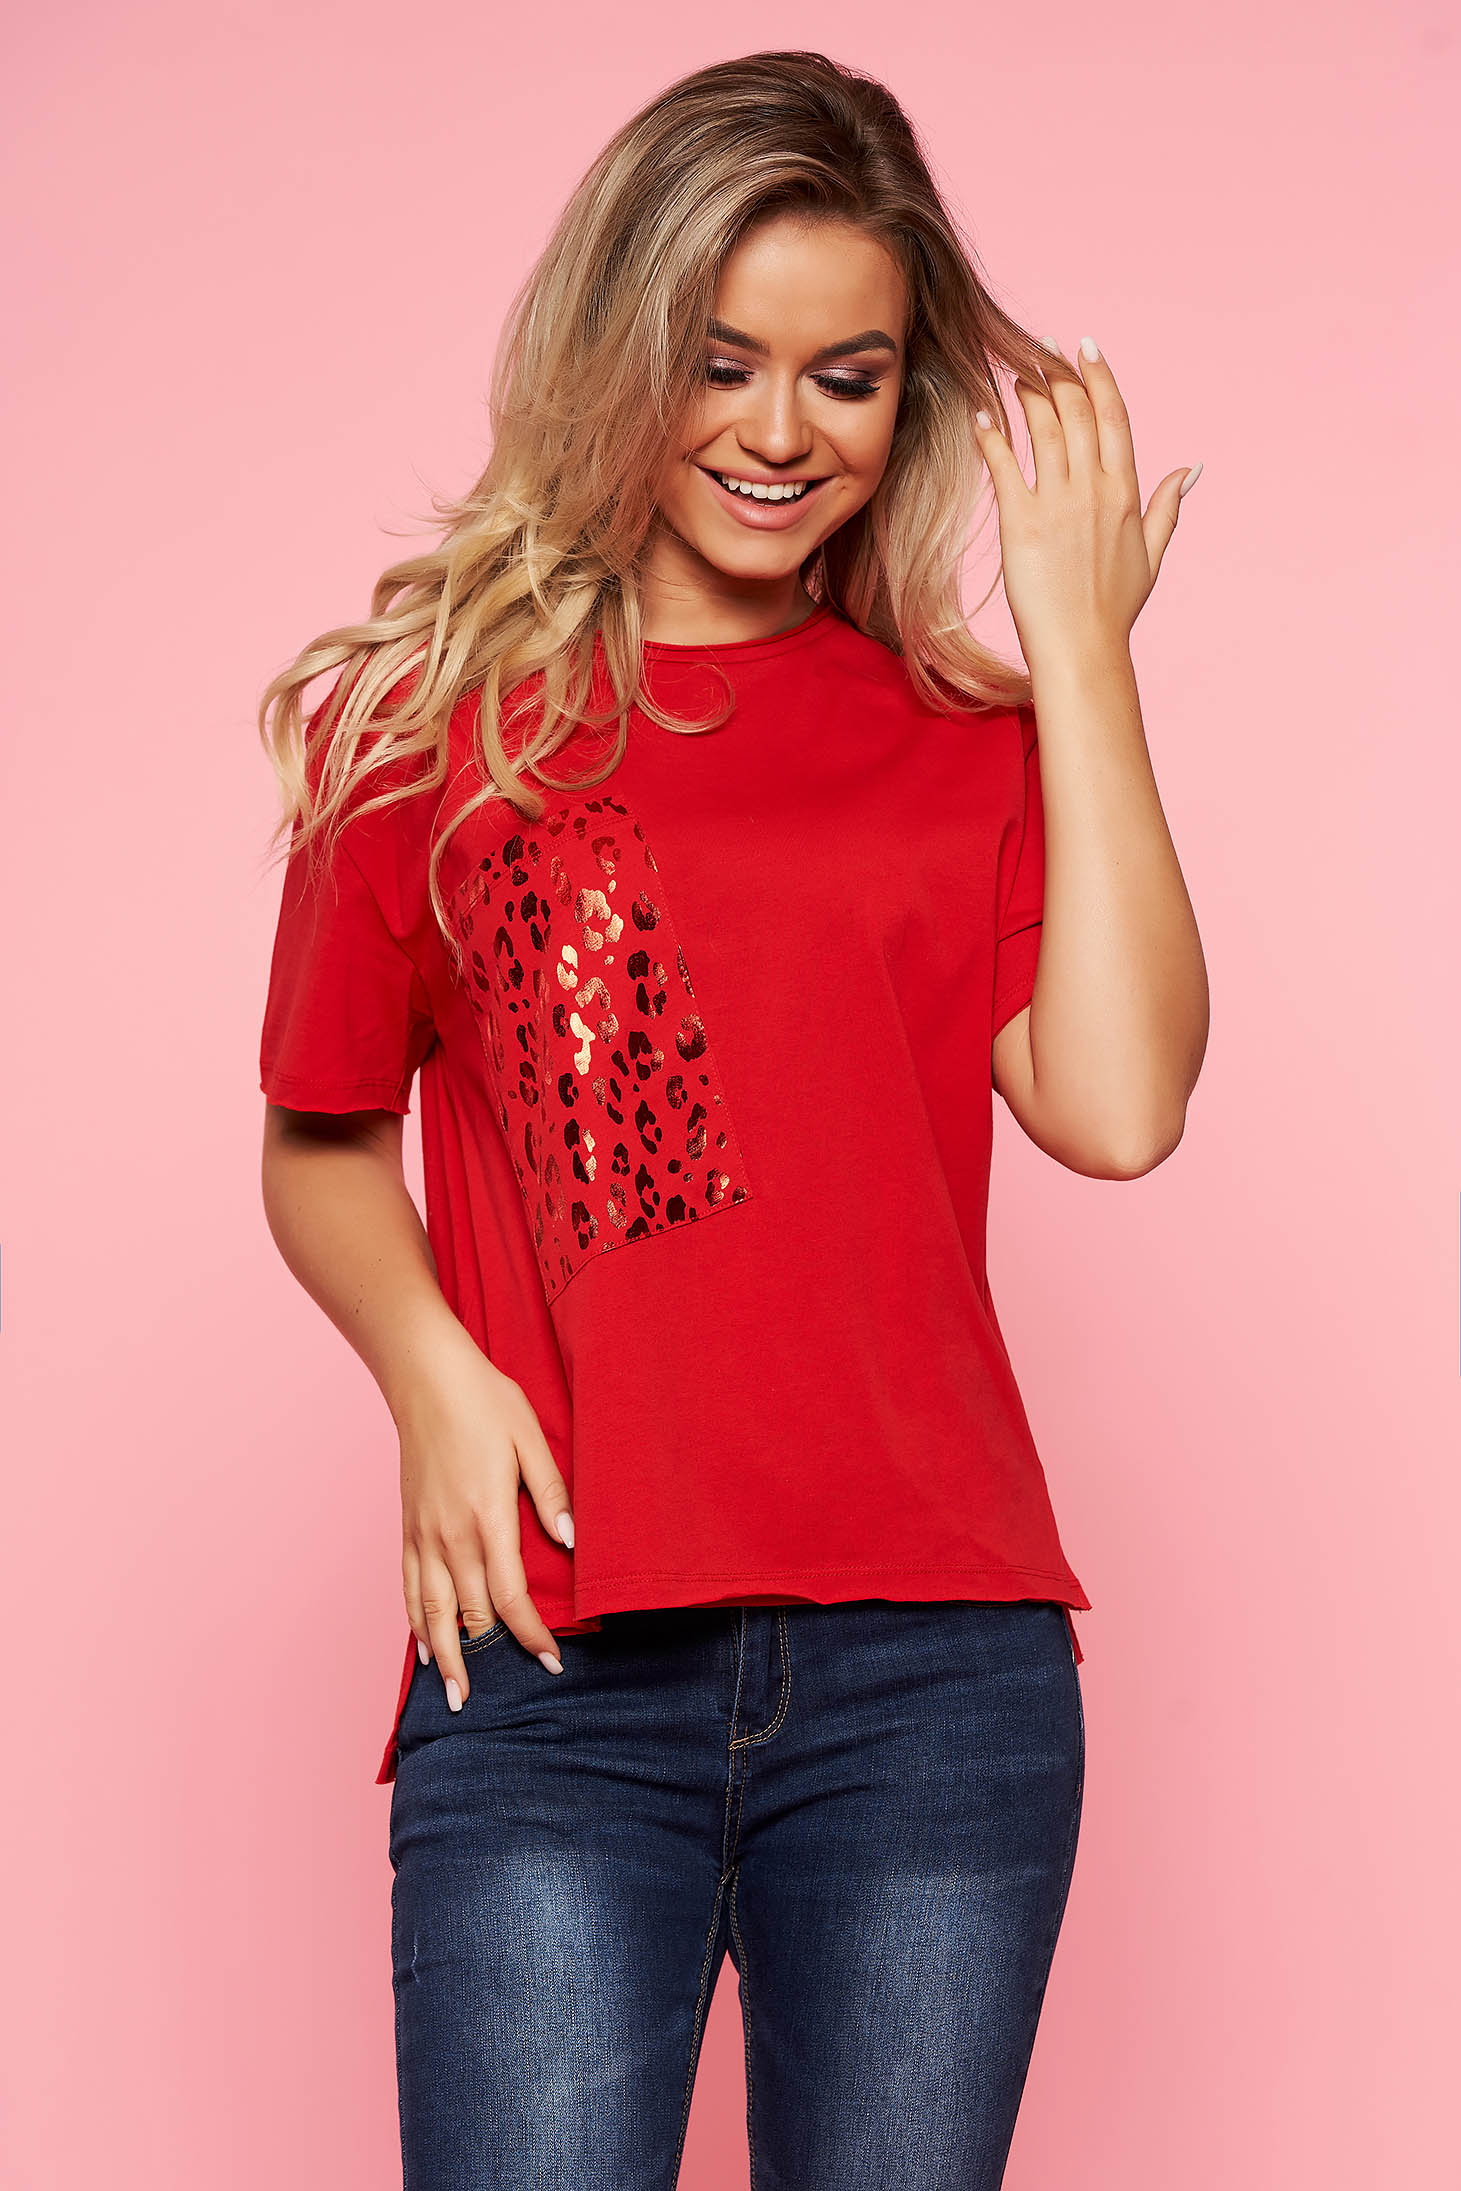 Top Secret red casual flared t-shirt cotton short sleeves